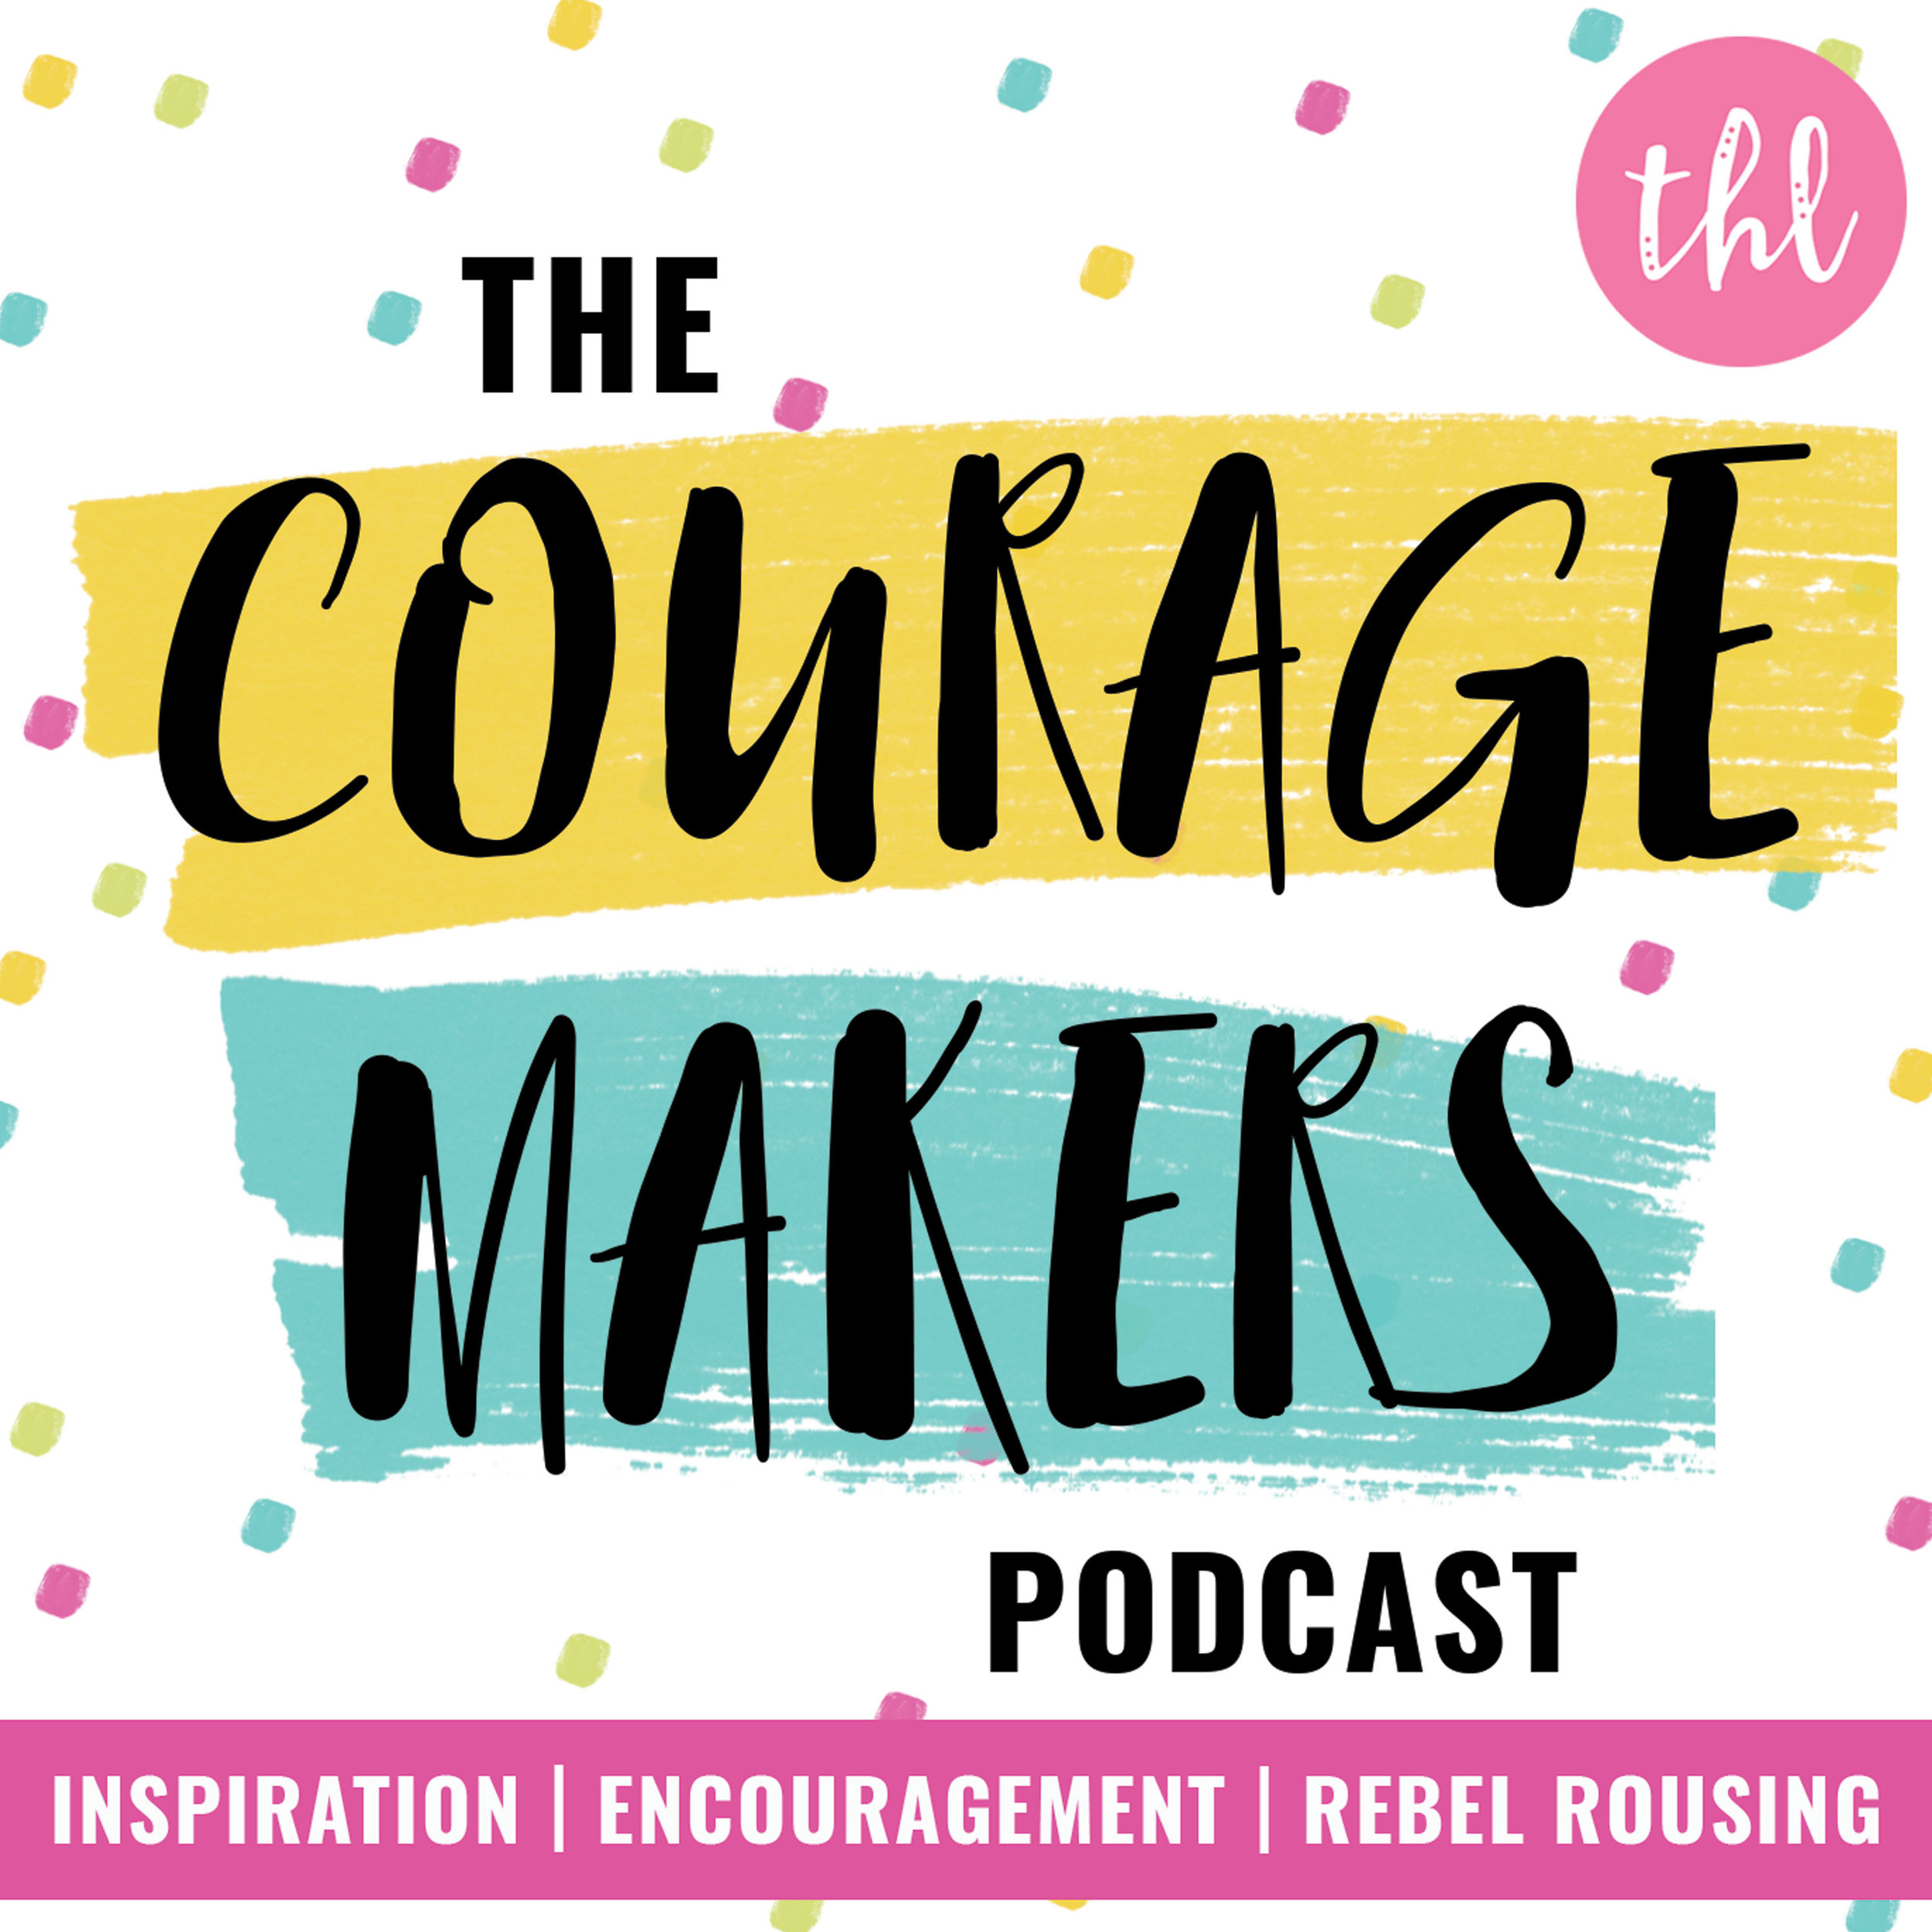 The-Couragemakers-Podcast-Cover-Art-3000x3000.jpg